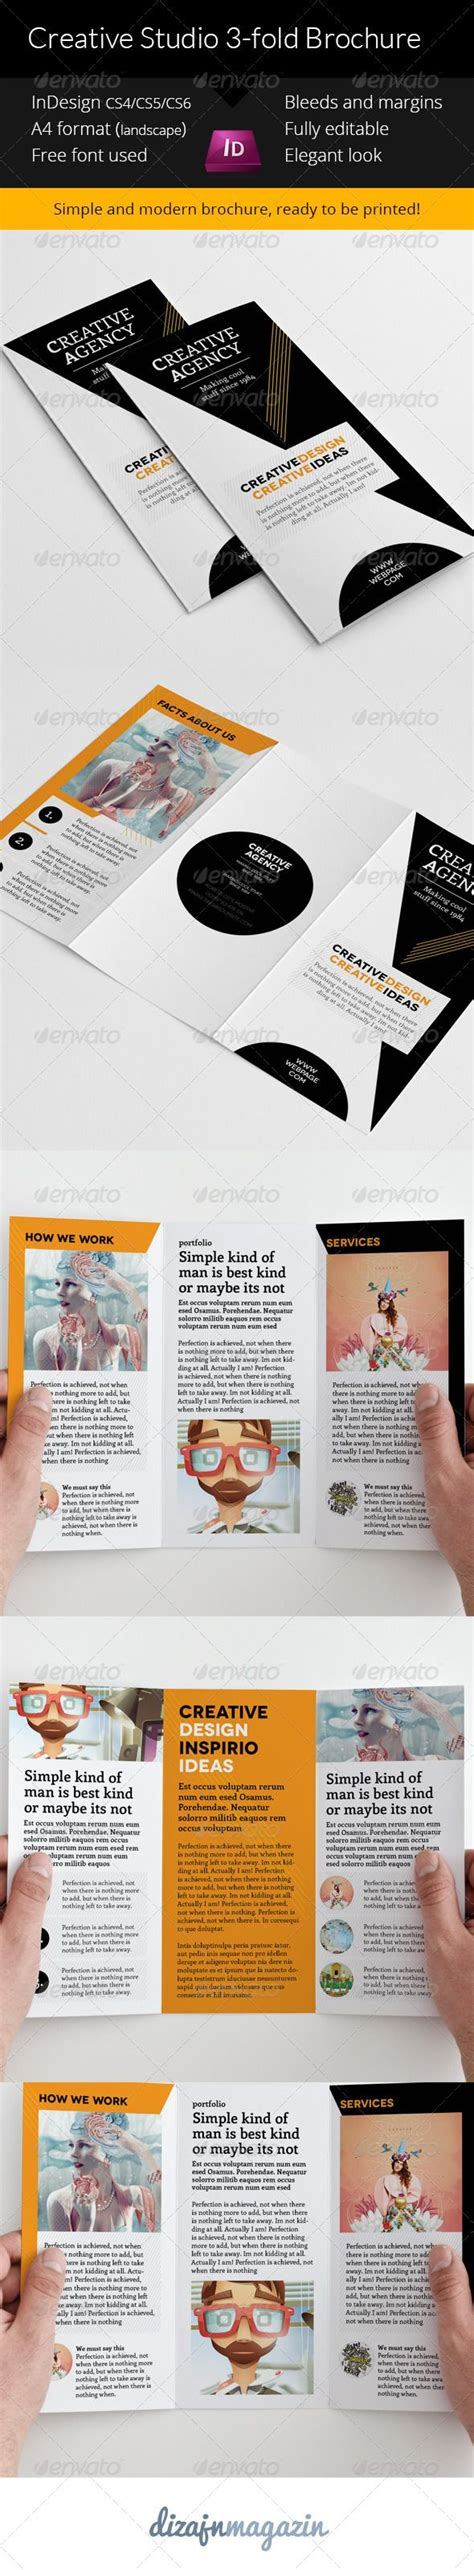 Free Indesign Brochure Templates Cs6 by 17 Best Images About Branding Mood Board On